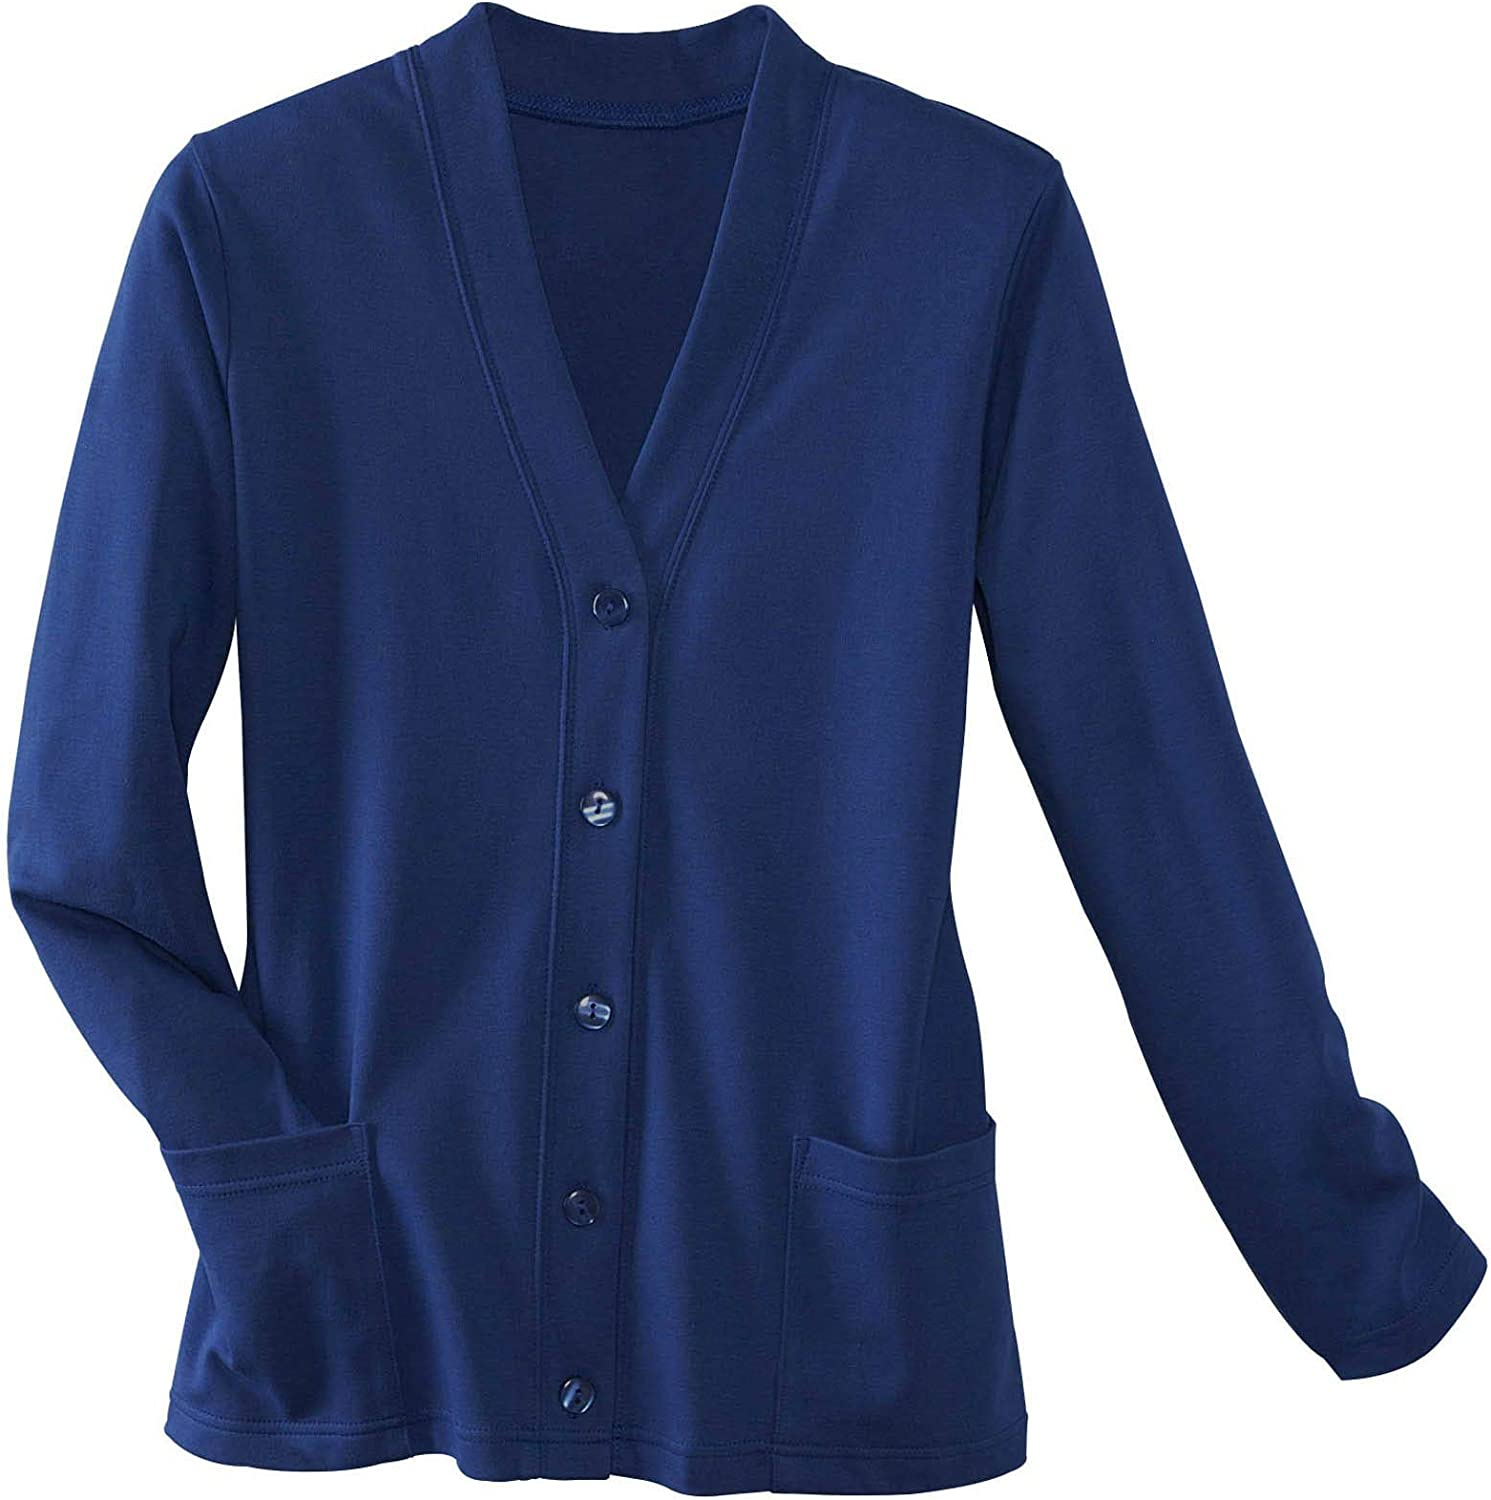 UltraSofts Petites Button-Front Knit Cardigan - Timeless Sweater, Long Sleeves Patch Pockets